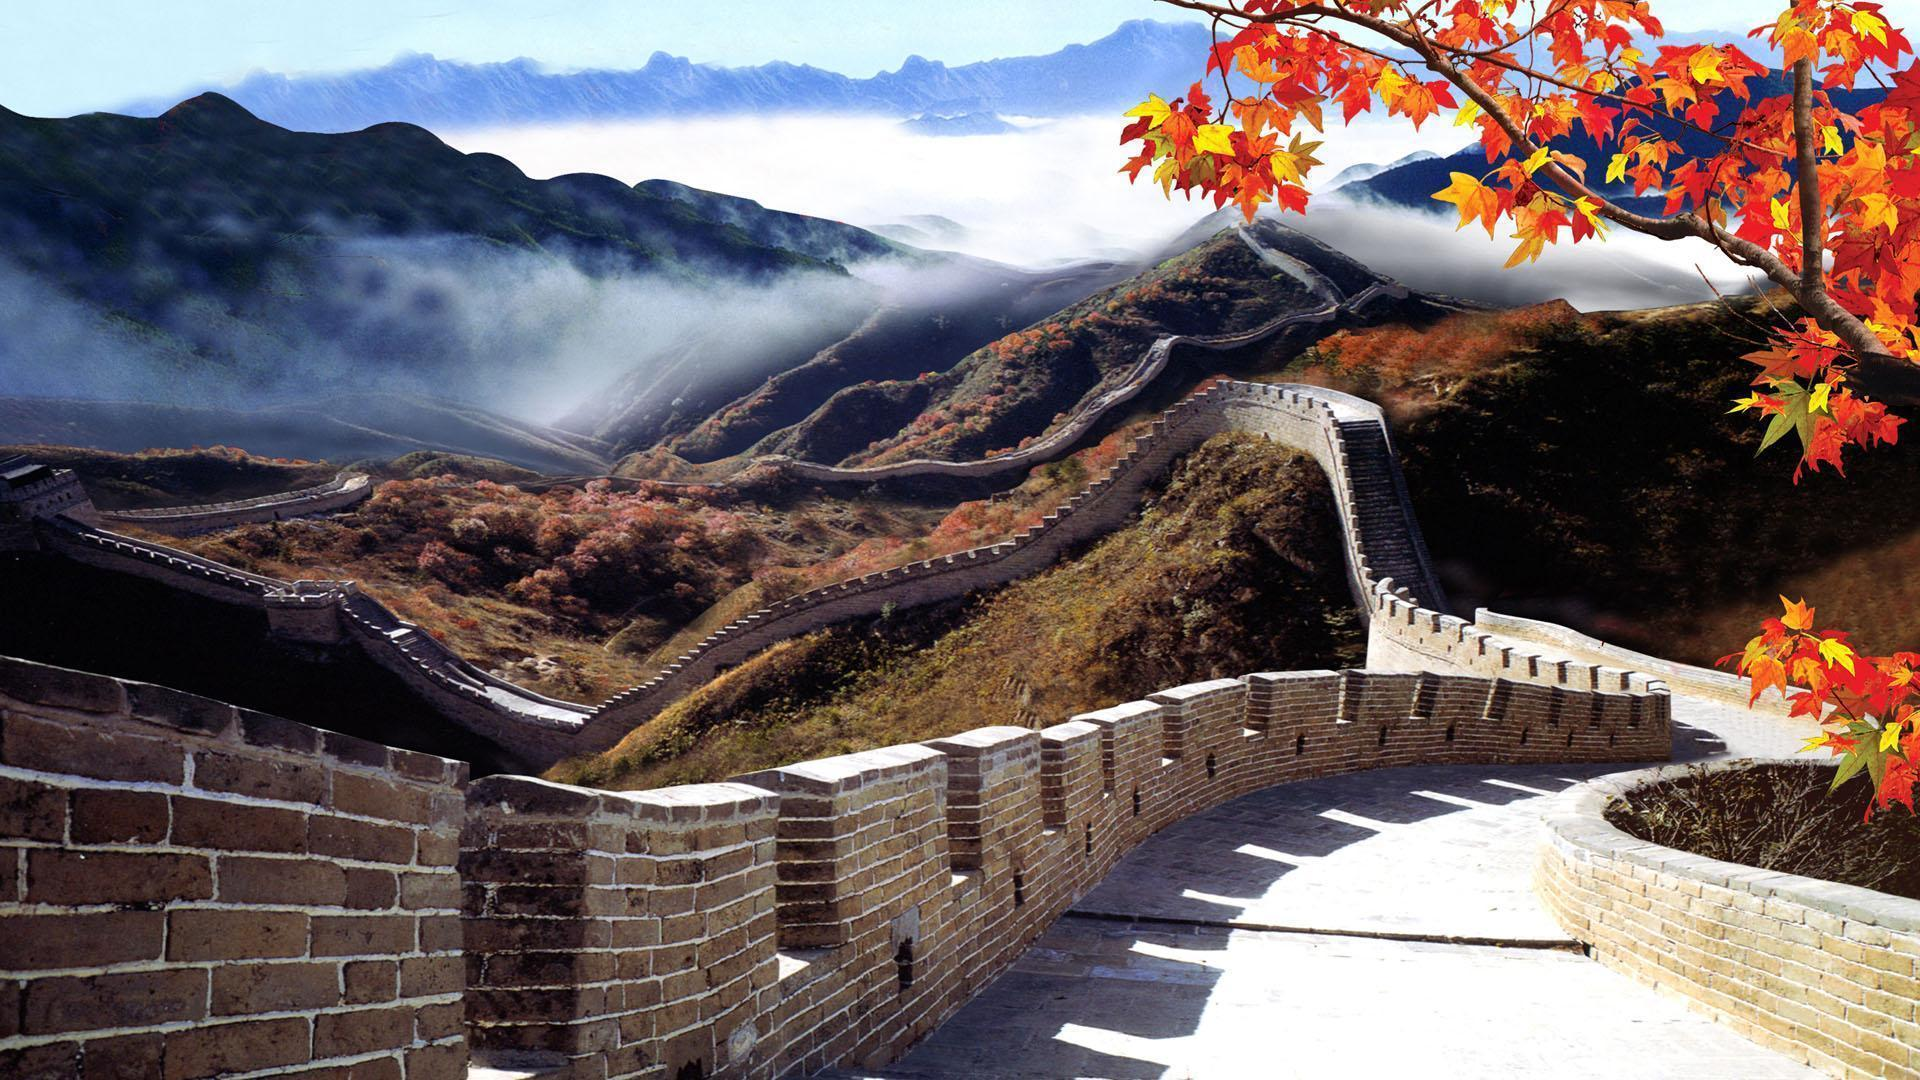 chinese hd background desktop - photo #1